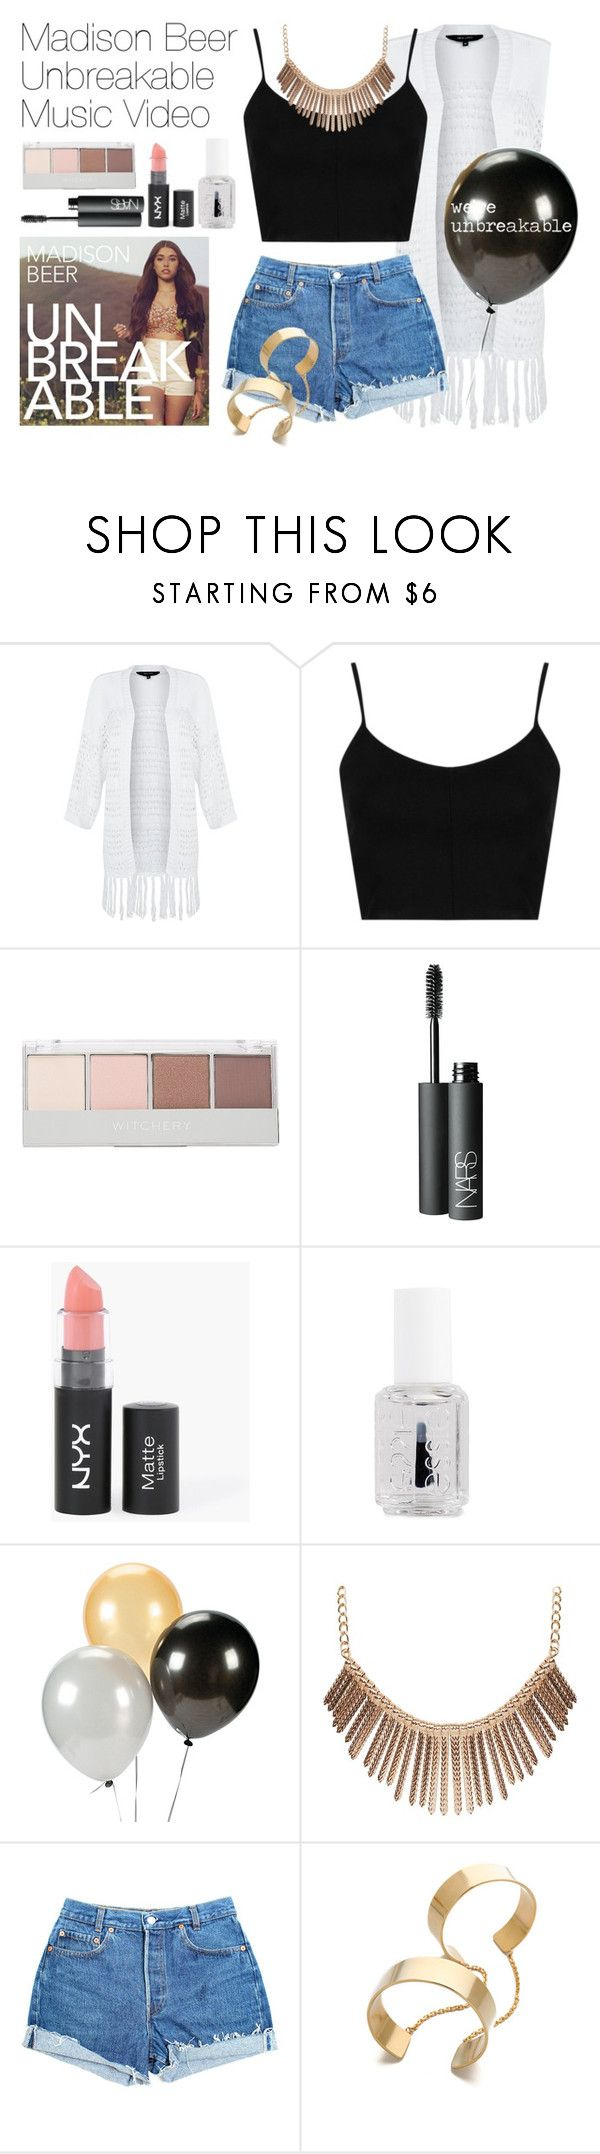 """Madison Beer Unbreakable Music Video"" by asabfbg ❤ liked on Polyvore featuring Topshop, Witchery, NARS Cosmetics, Essie, Humble Chic, Levi's, Vanessa Mooney, women's clothing, women's fashion and women"